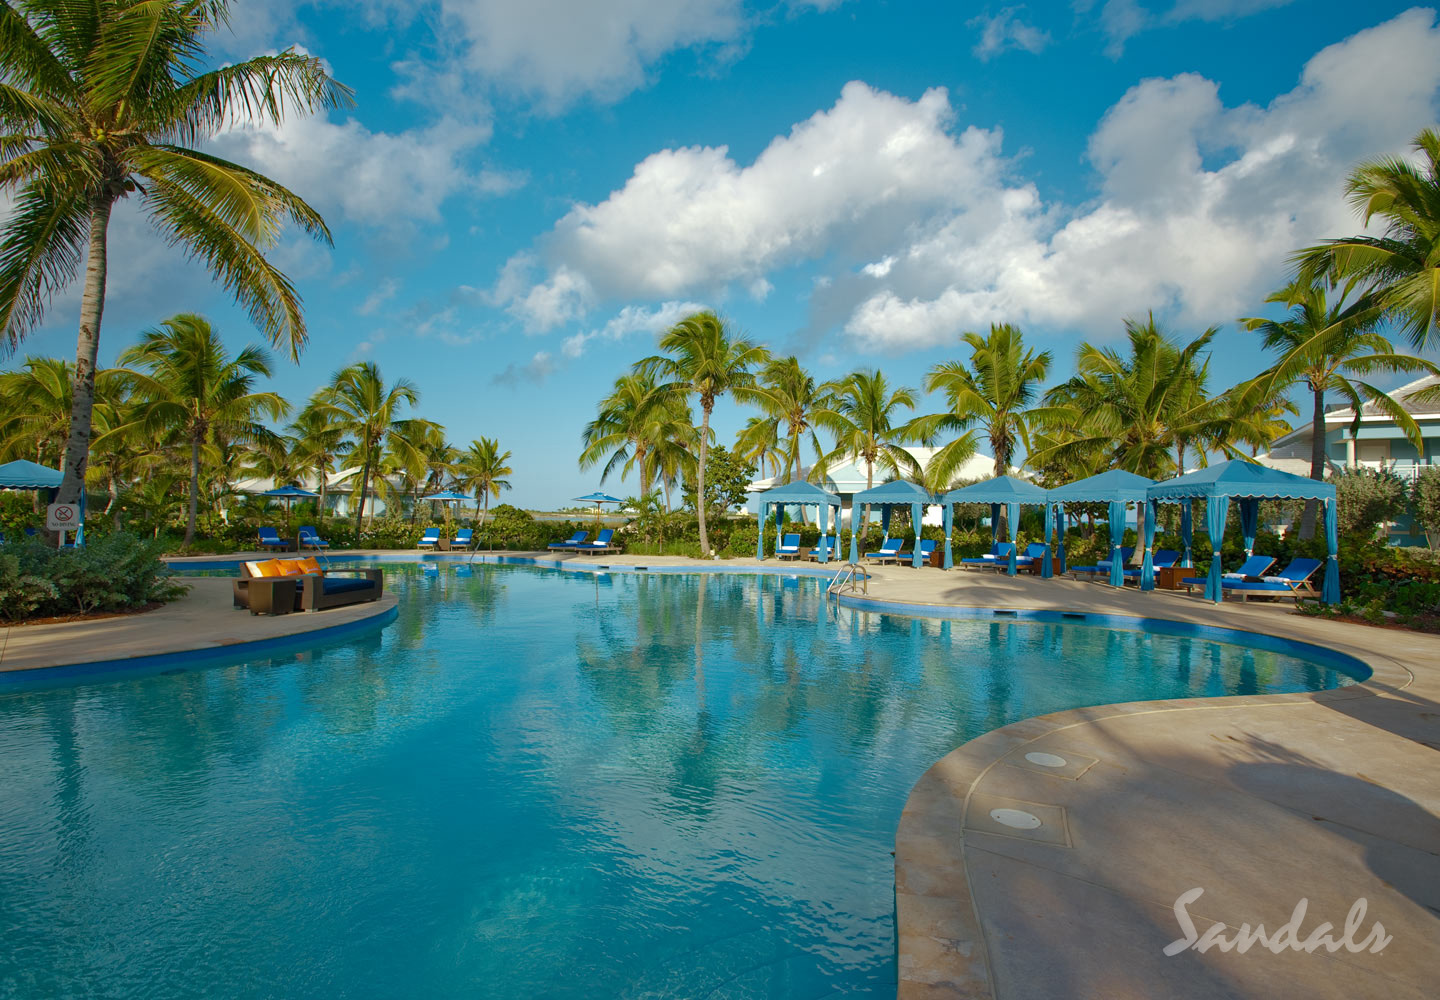 Travel Agency All-Inclusive Resort Sandals Emerald Bay 073